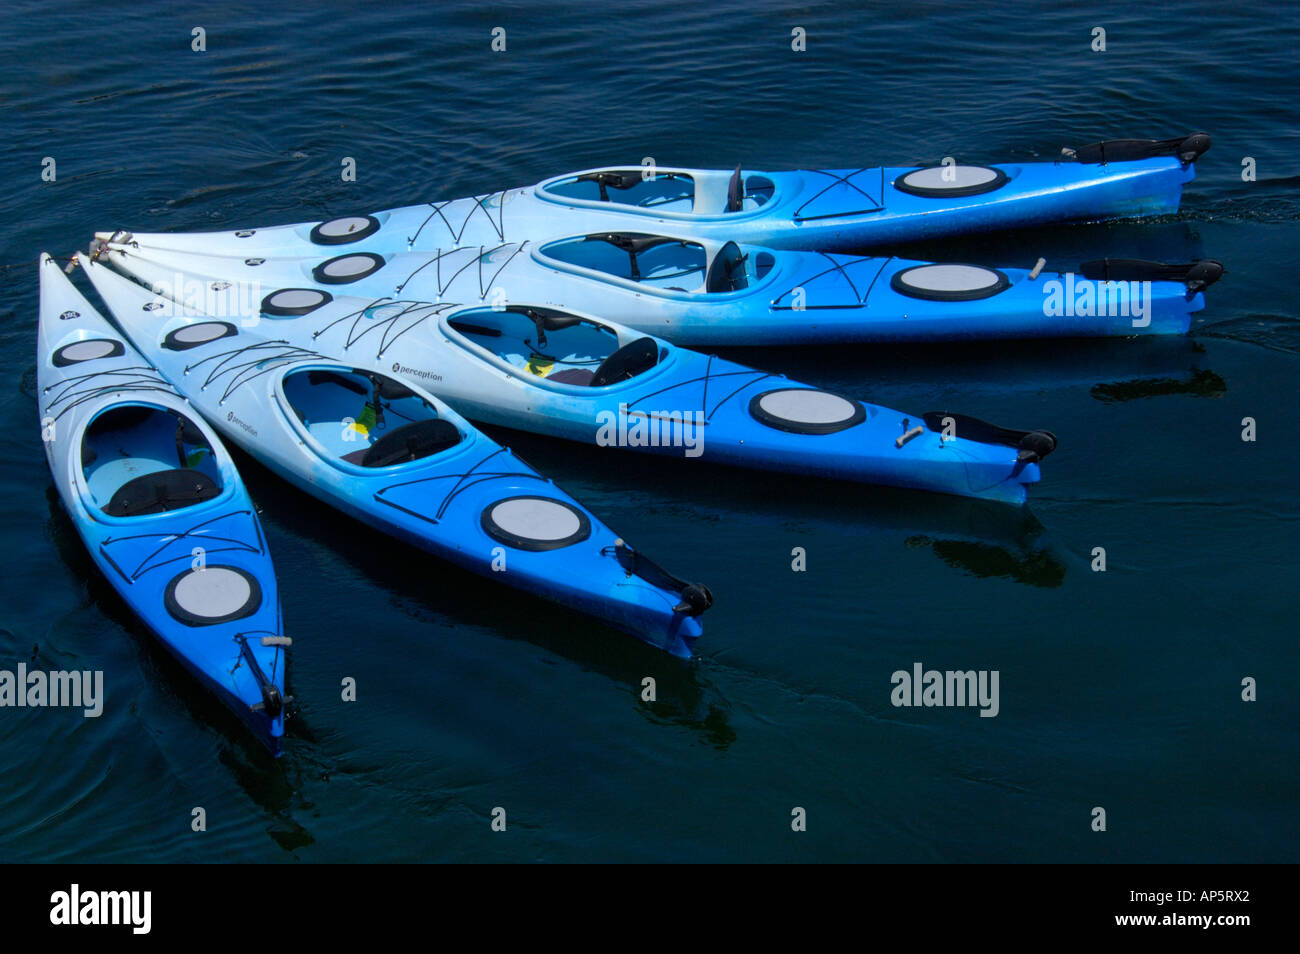 Perception Kayak Kayaks Stock Photos & Perception Kayak Kayaks Stock